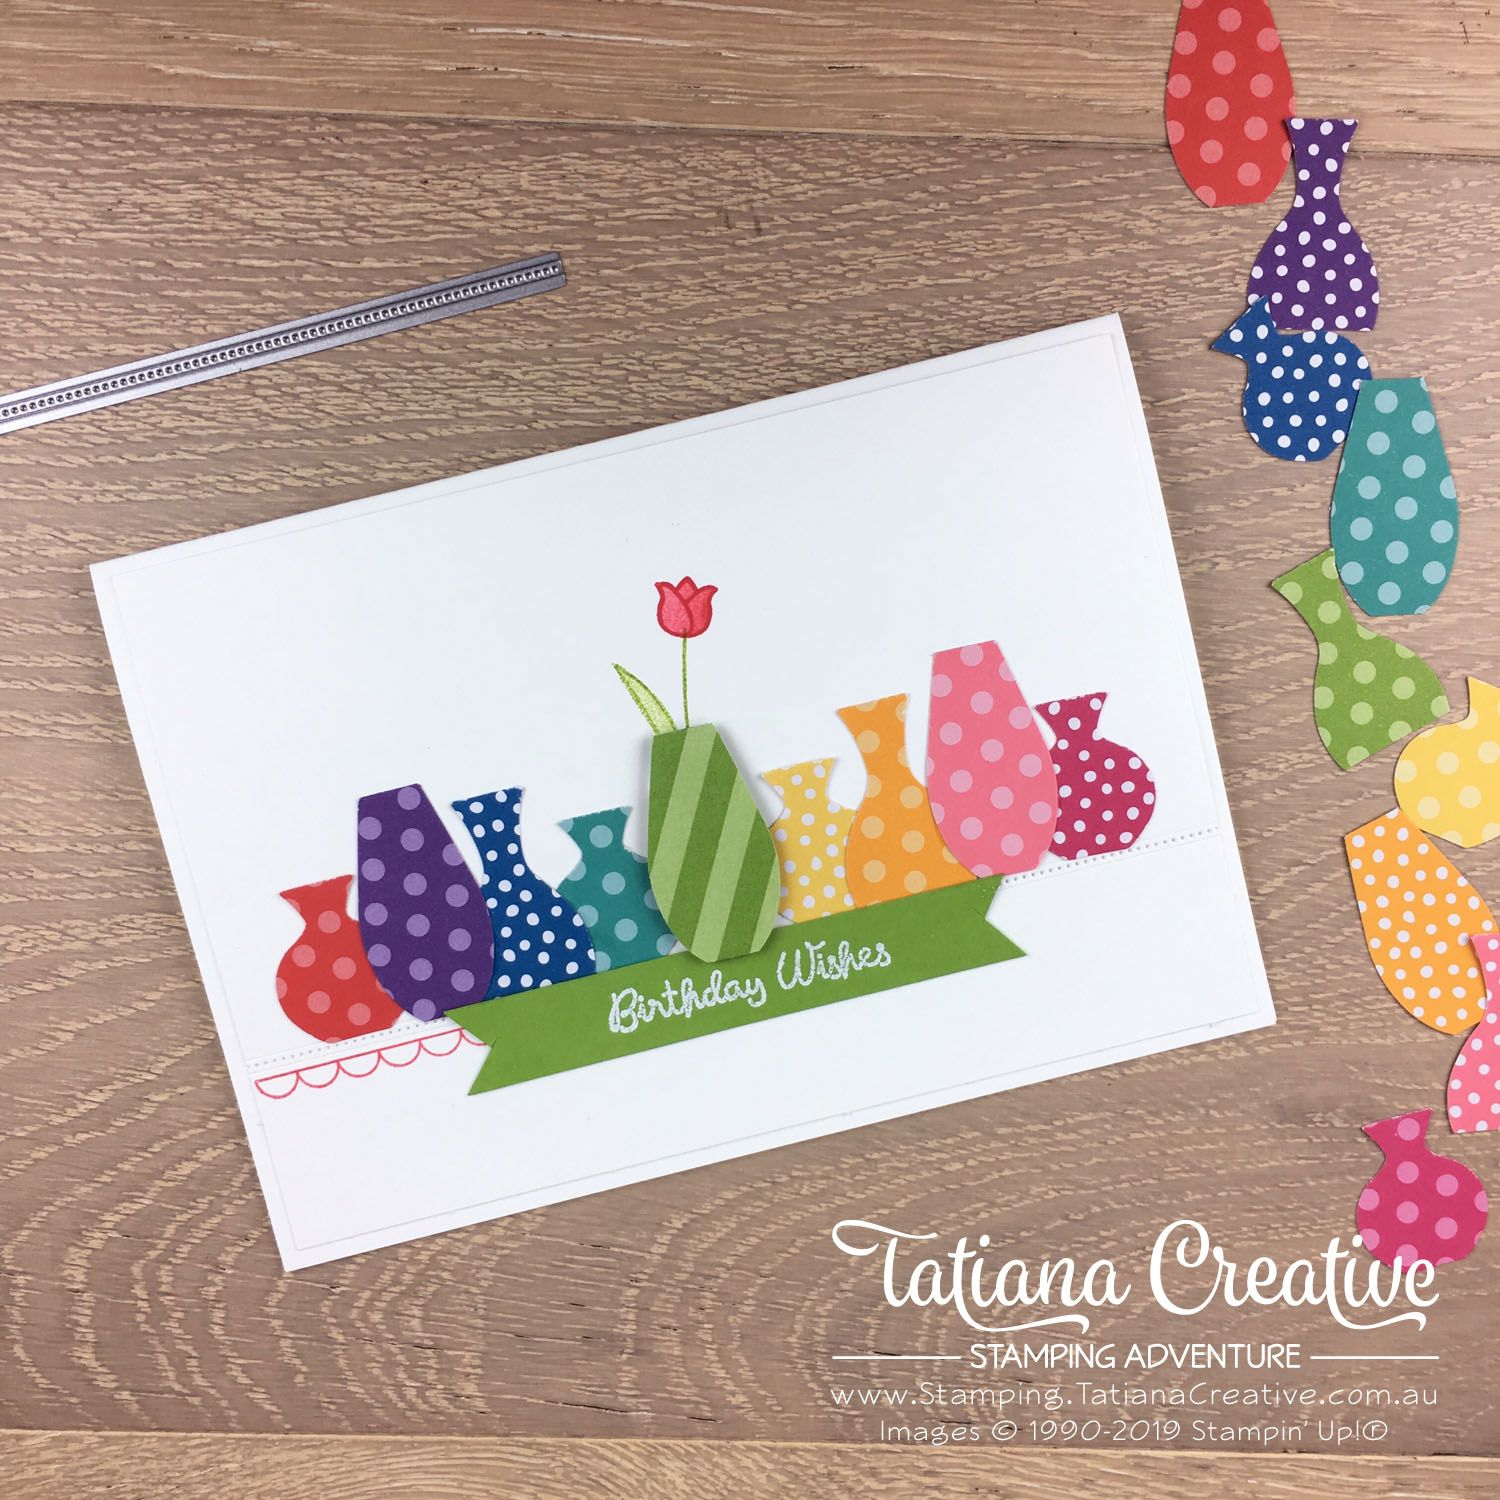 Tatiana Creative Stamping Adventure - Bright Birthday Vases card using the Vases Builder Punch by Stampin' Up!® #flowercards